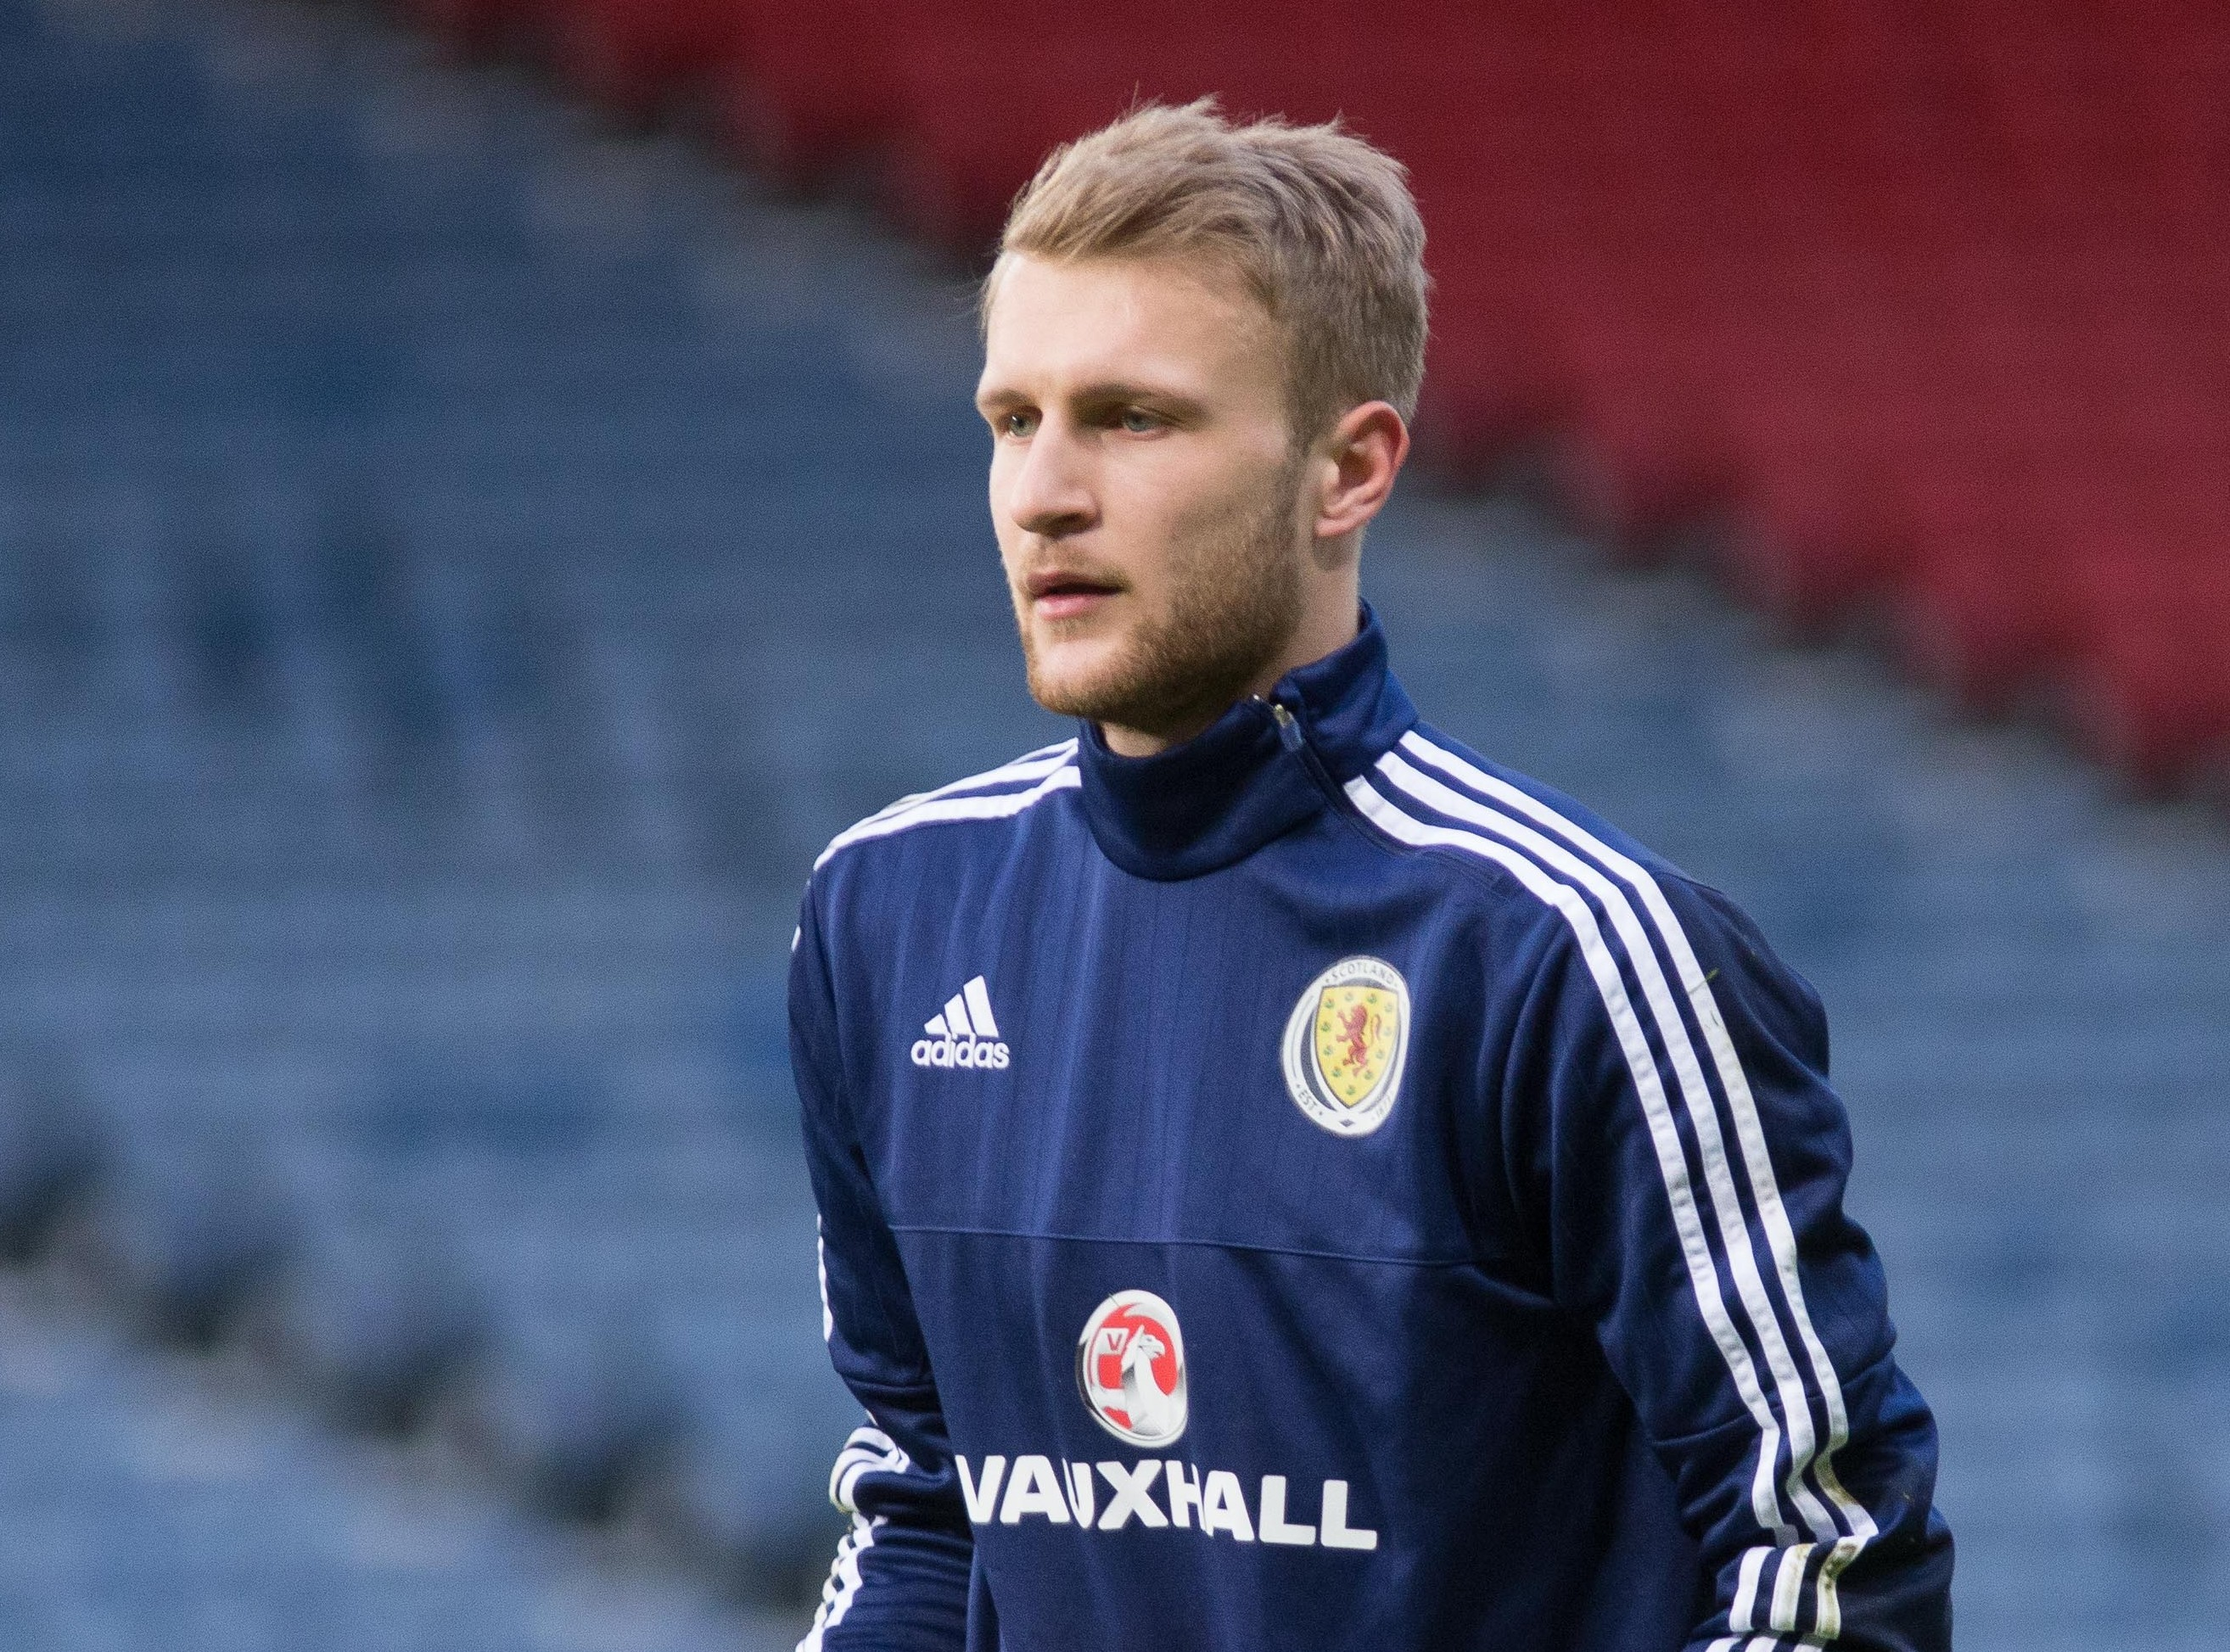 Dundee keeper Scott Bain had to watch on from the bench again as Scotland beat Denmark 1-0.